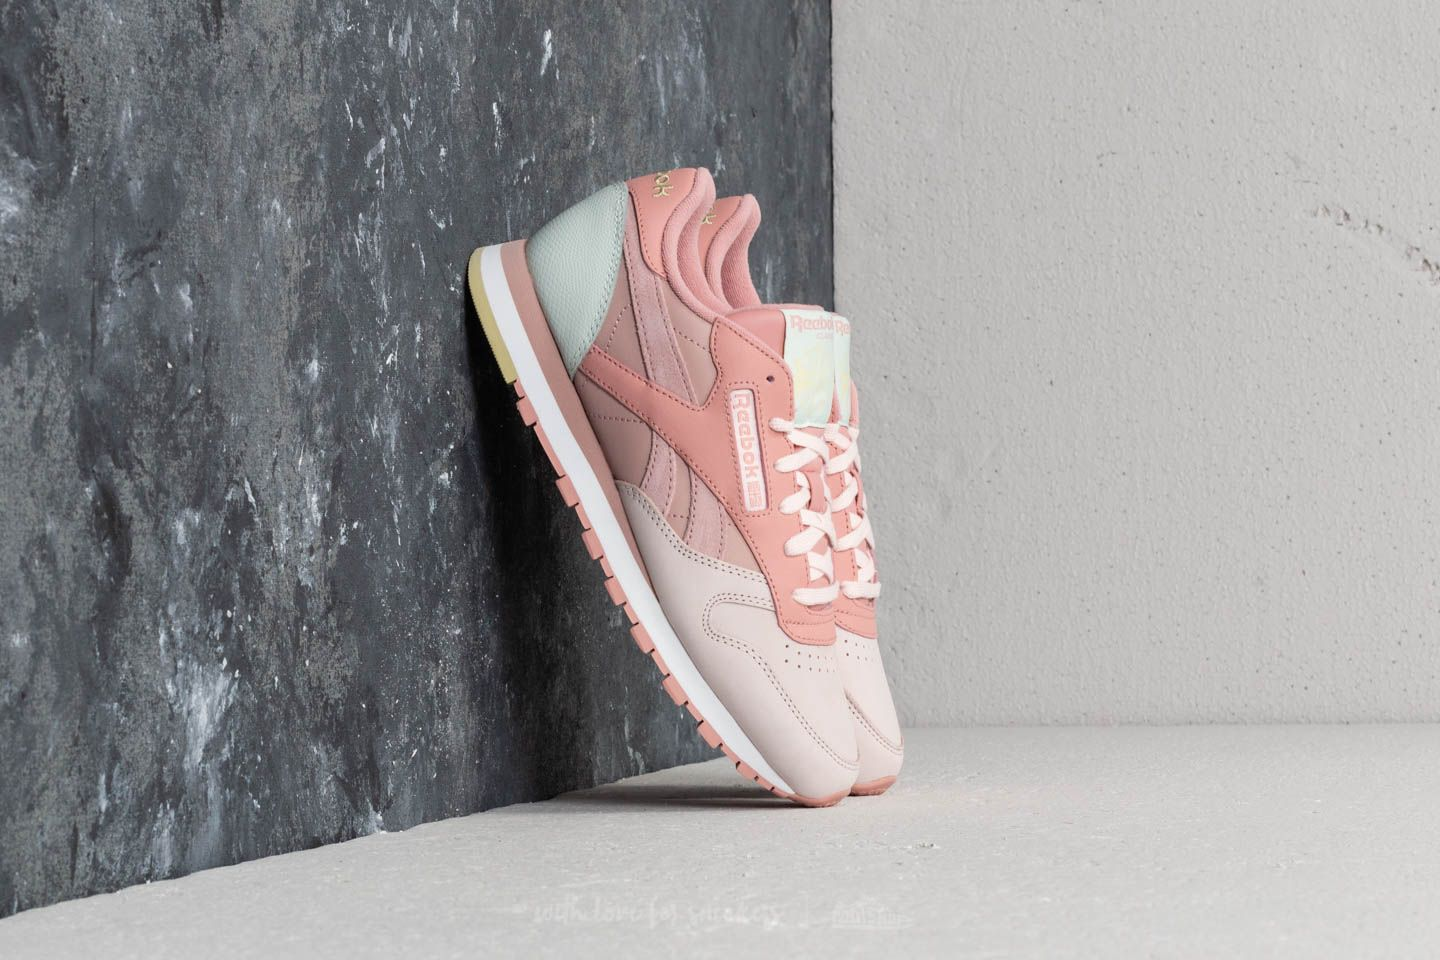 Reebok CL Leather PM Pale Pink  Shell Pink  Opal at a great price 66 d4dac89bbf0e